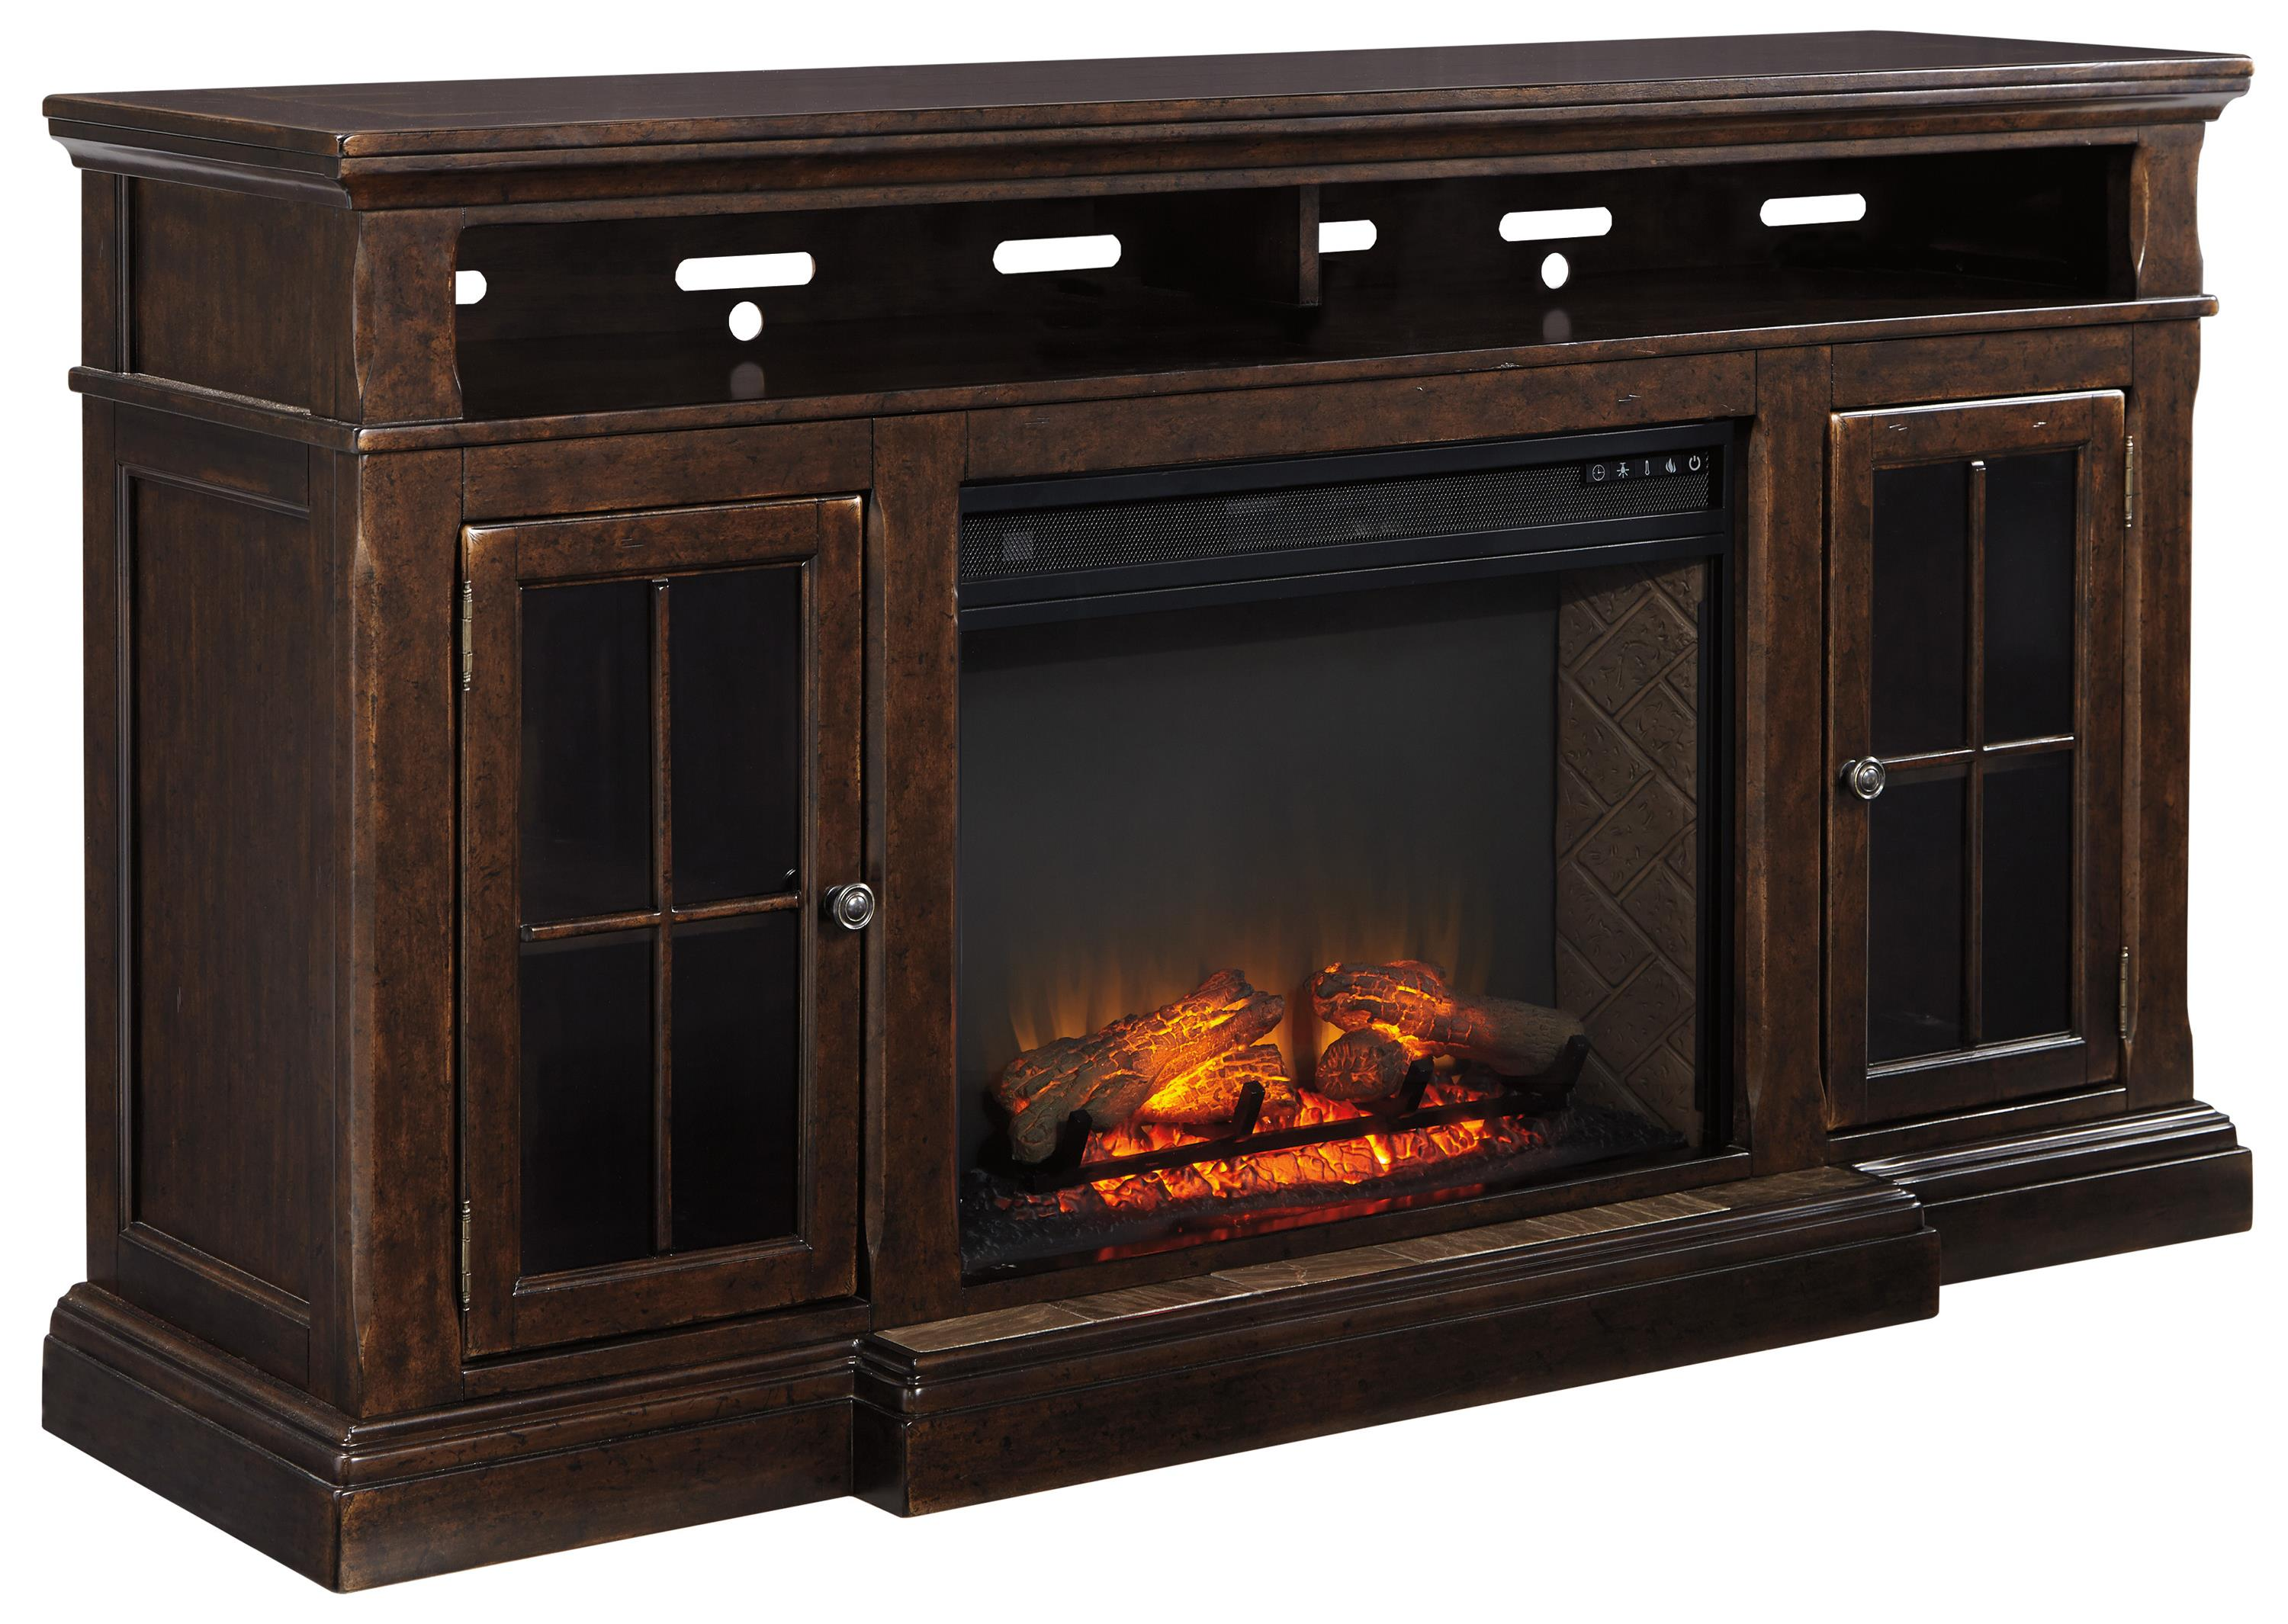 Transitional Extra Large TV Stand W Fireplace Insert By Signature Design By Ashley Wolf And